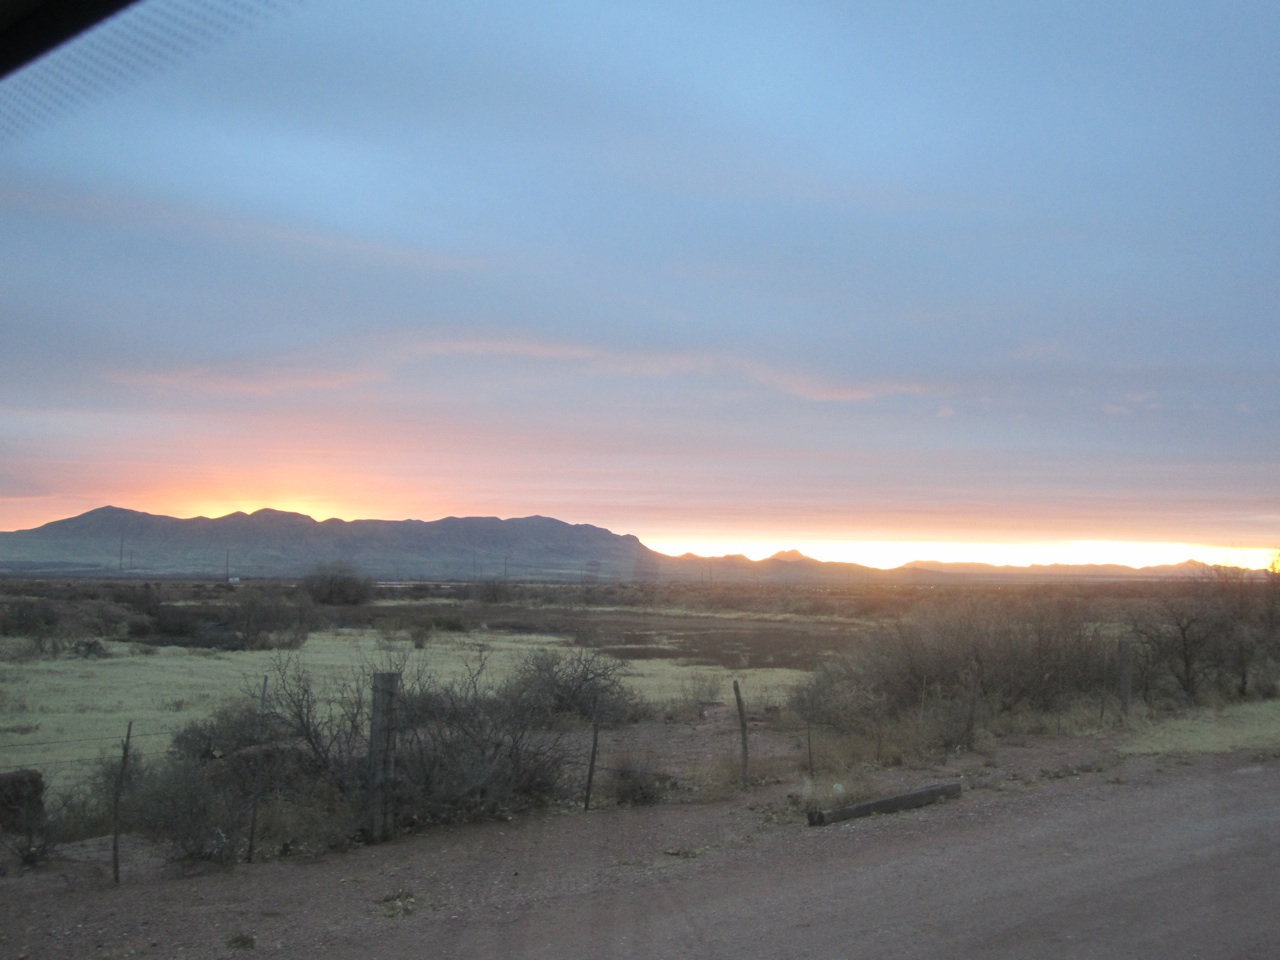 Sun Rise Coming Over The Mountains